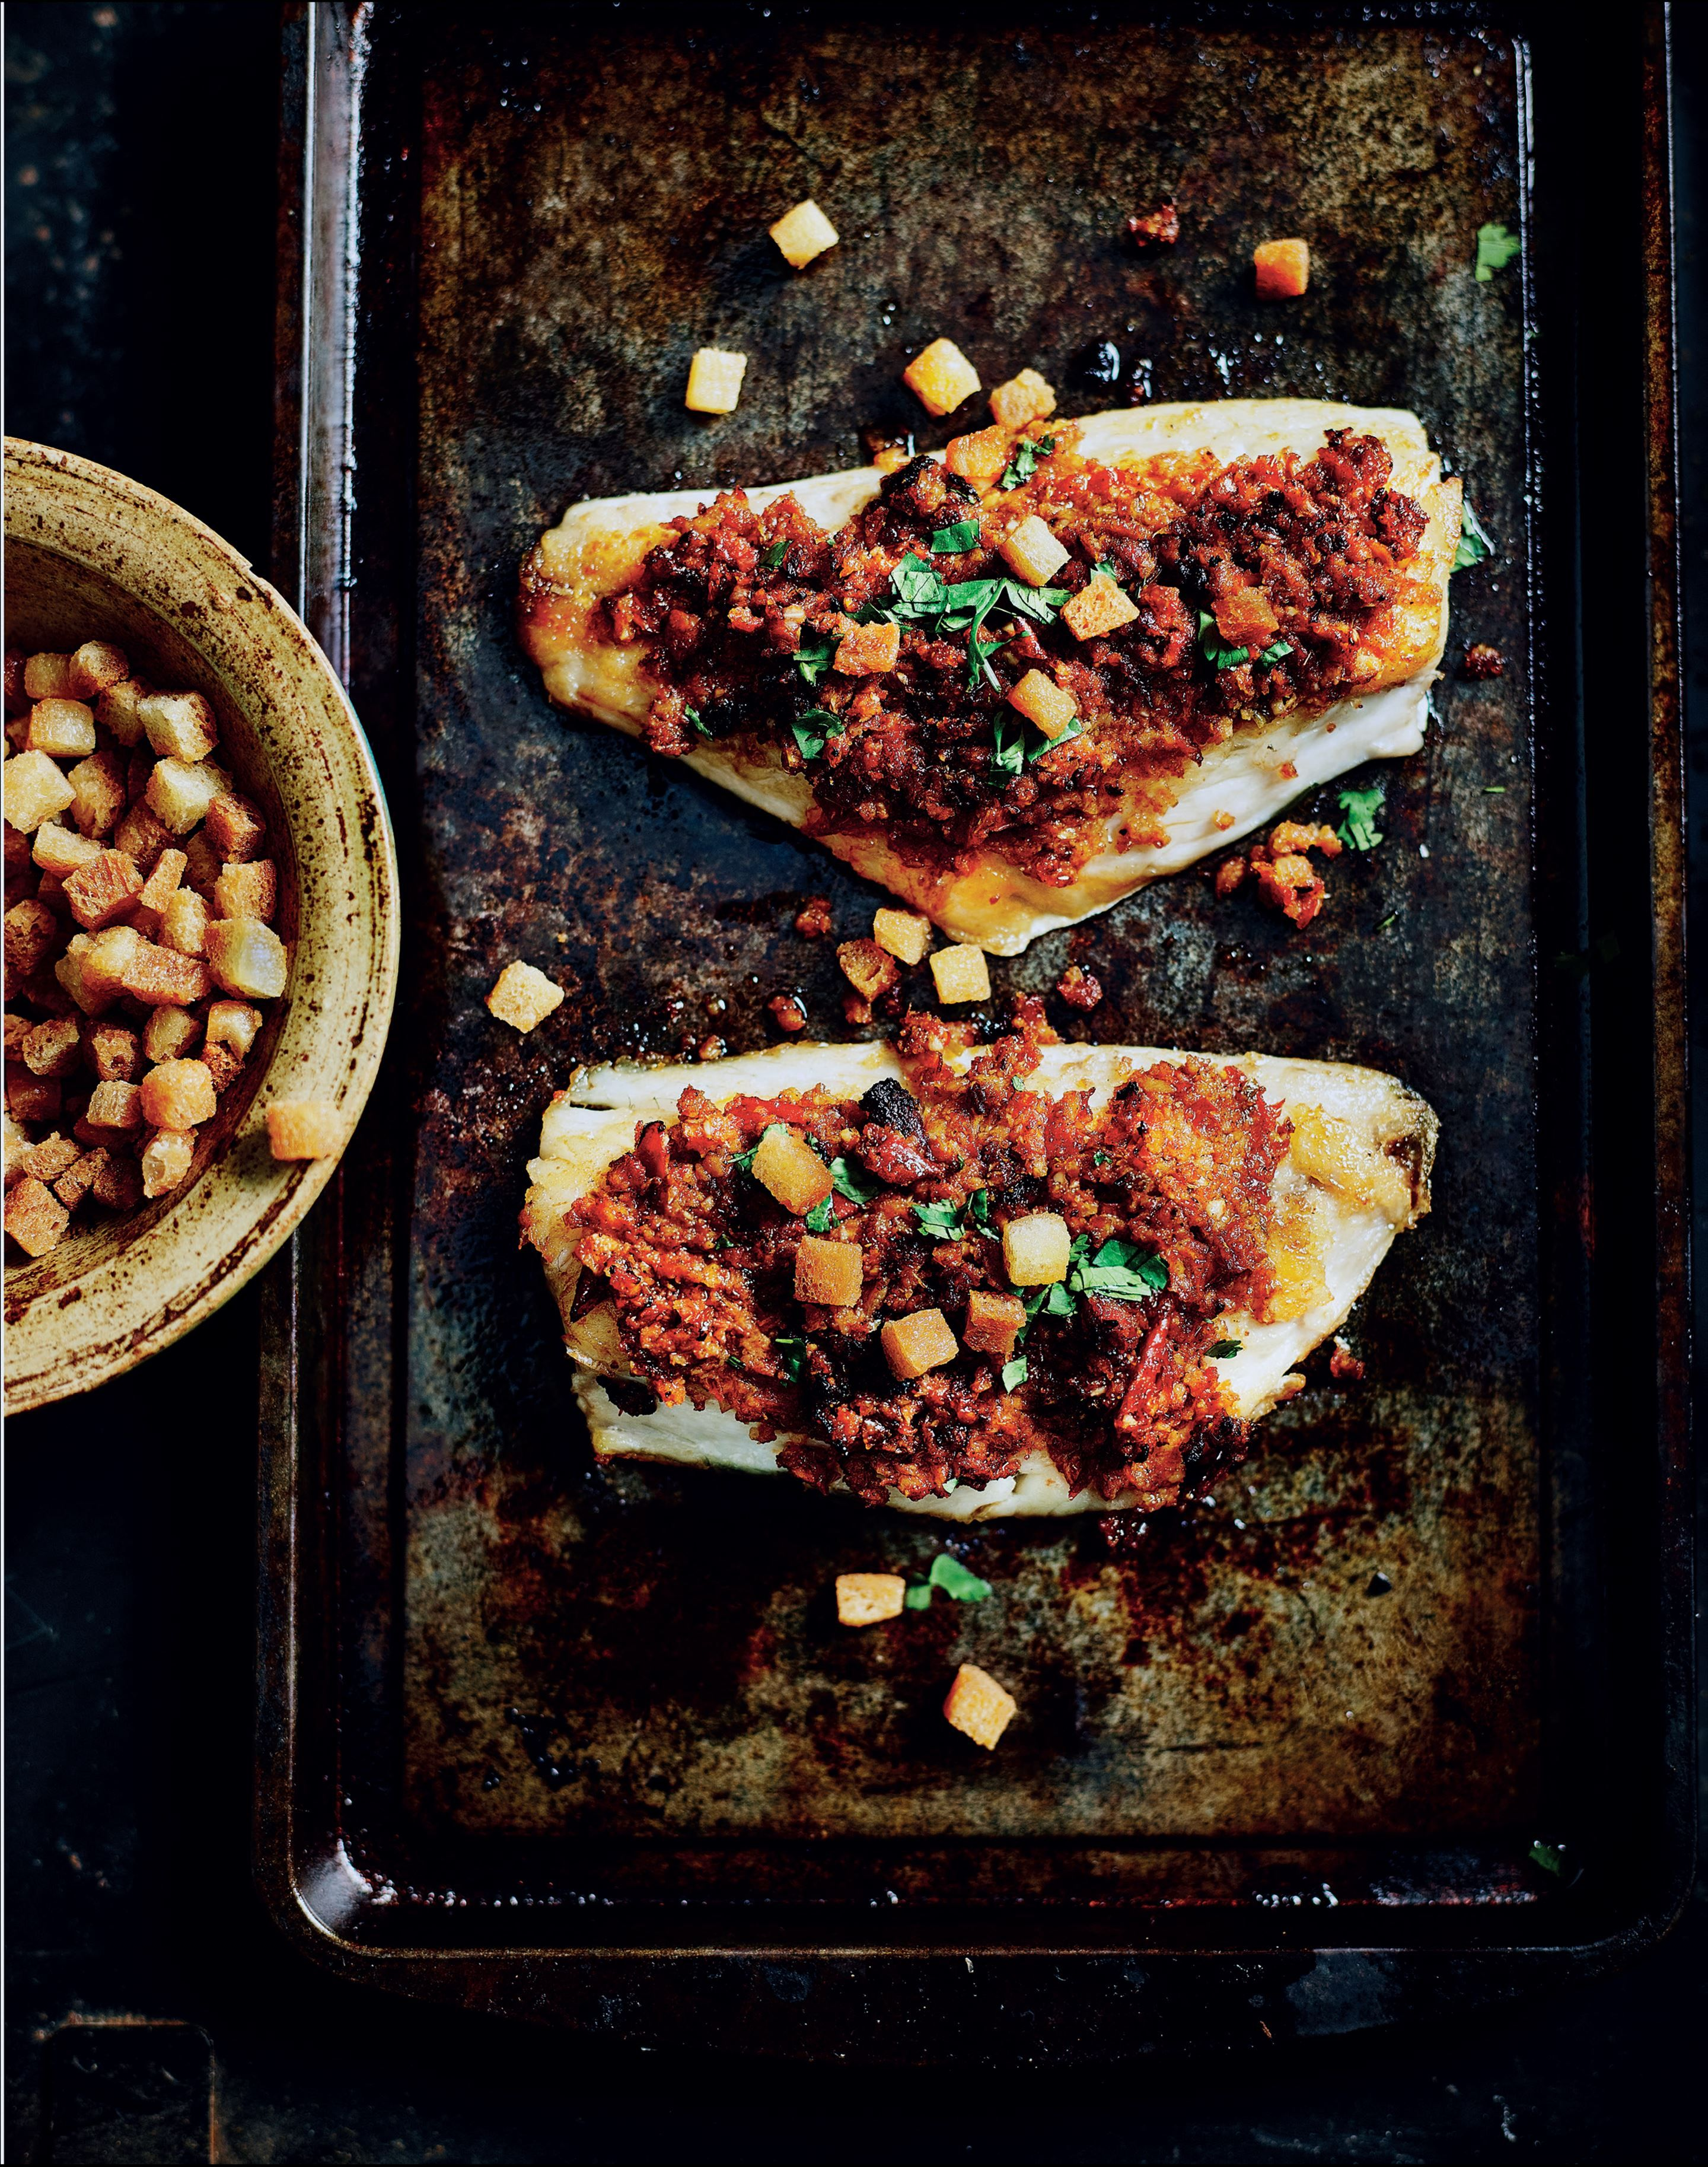 Sindhi Style Grilled Fish Recipe From I Love India By Anjum Anand